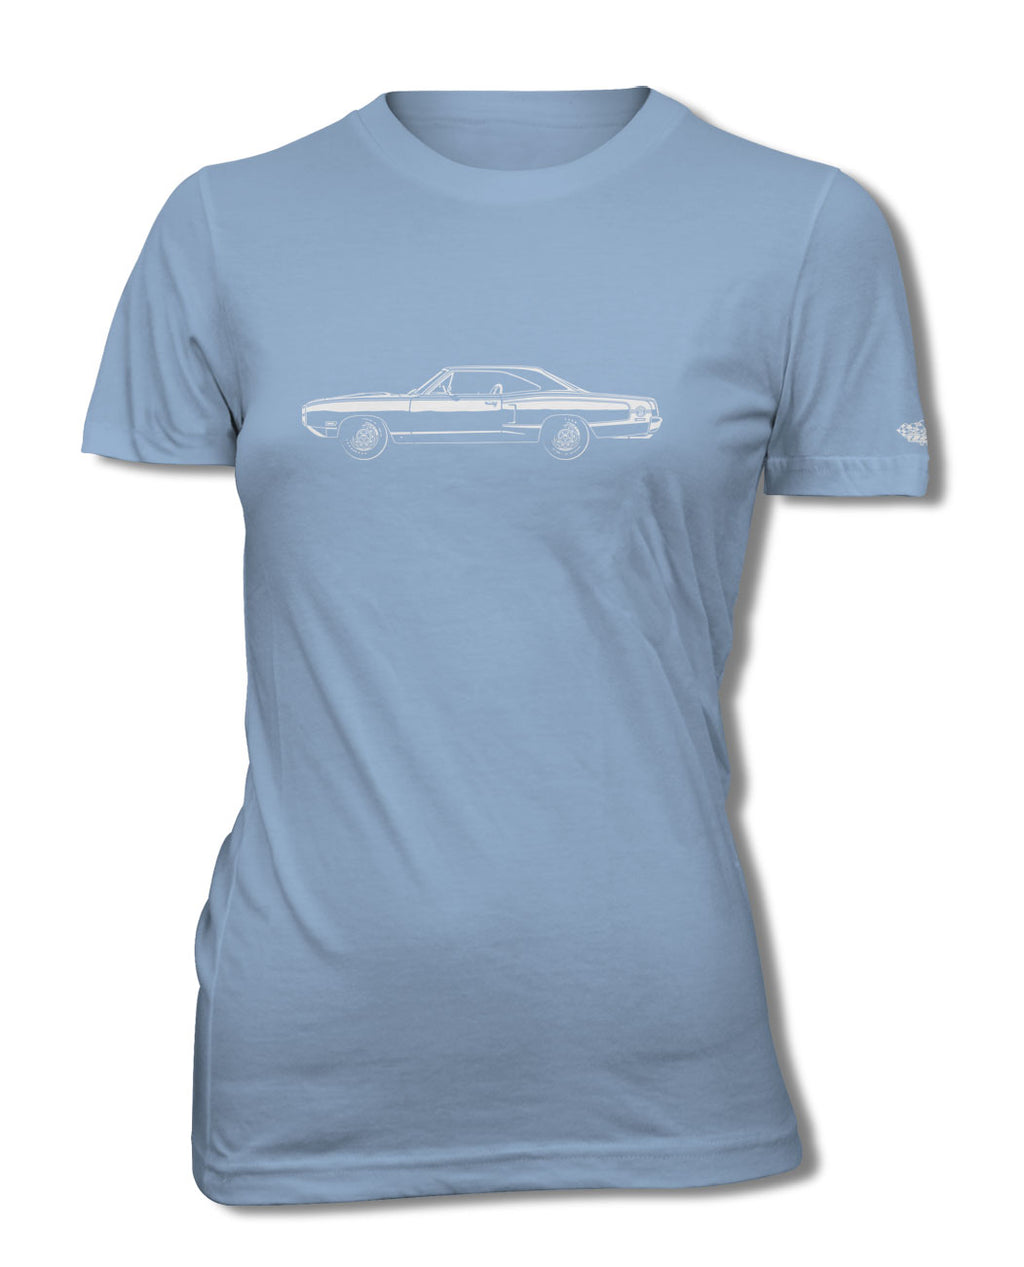 1970 Dodge Coronet Super Bee Coupe T-Shirt - Women - Side View